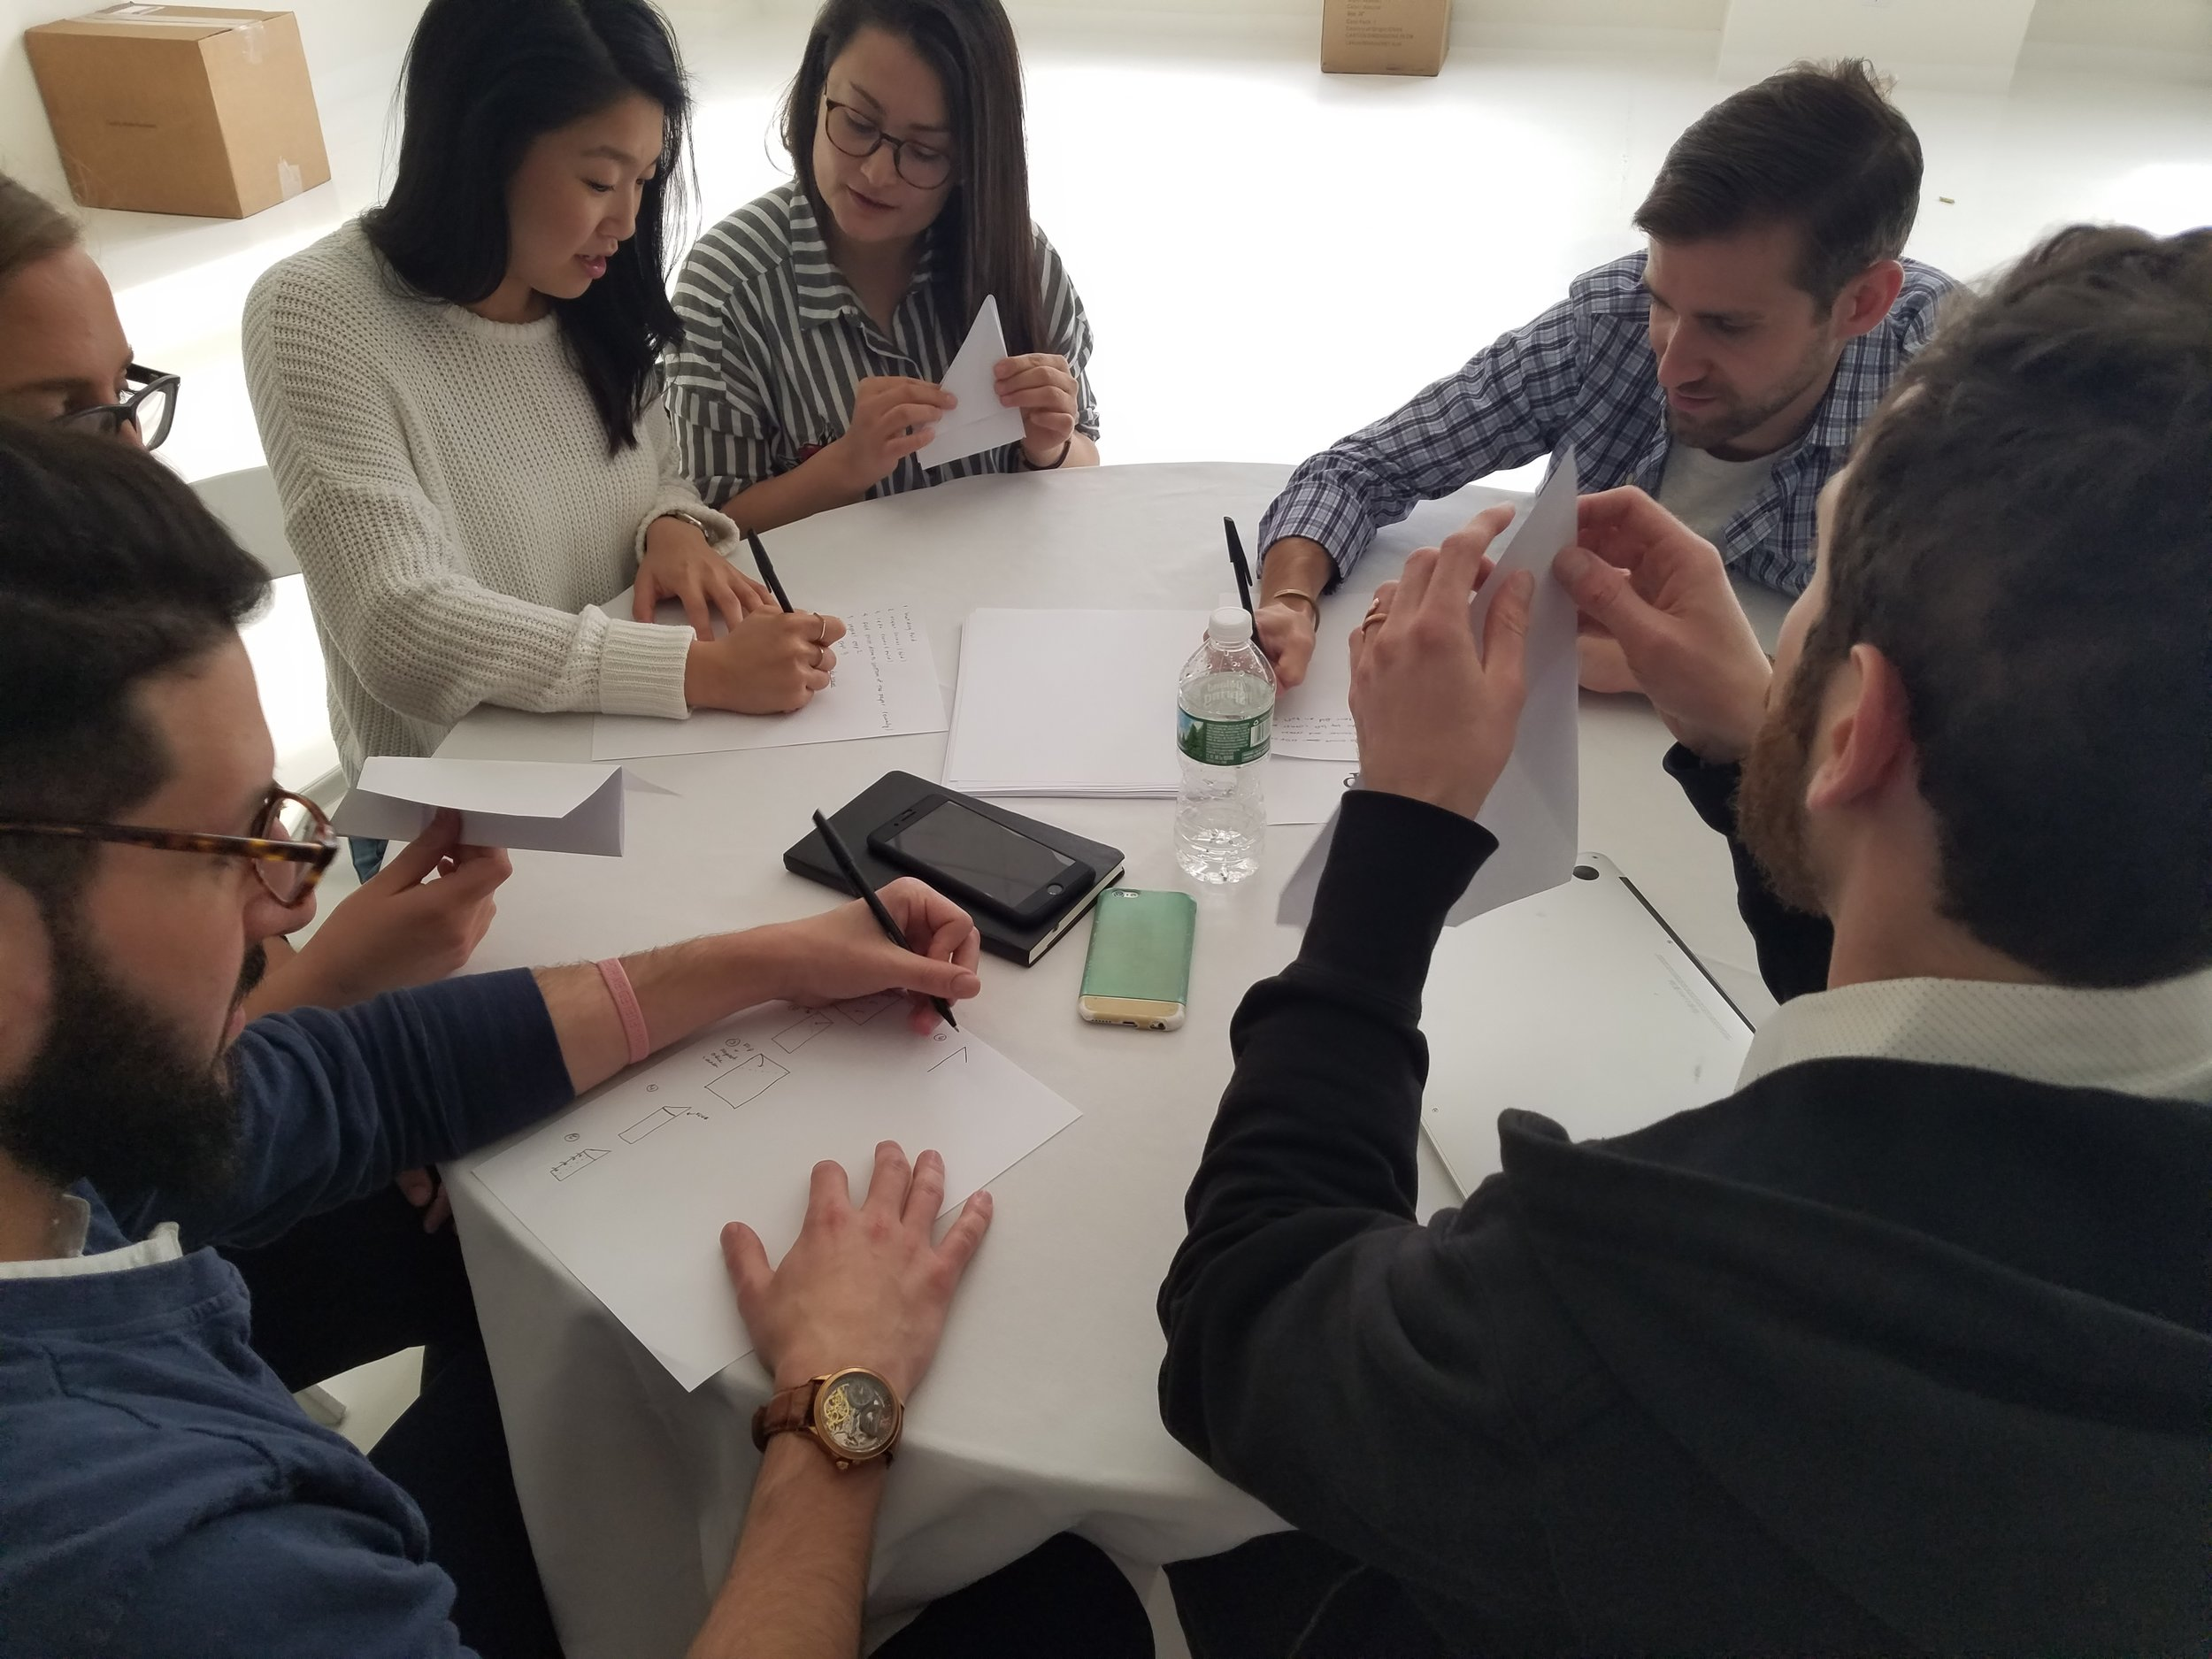 A communications style workshop using Origami